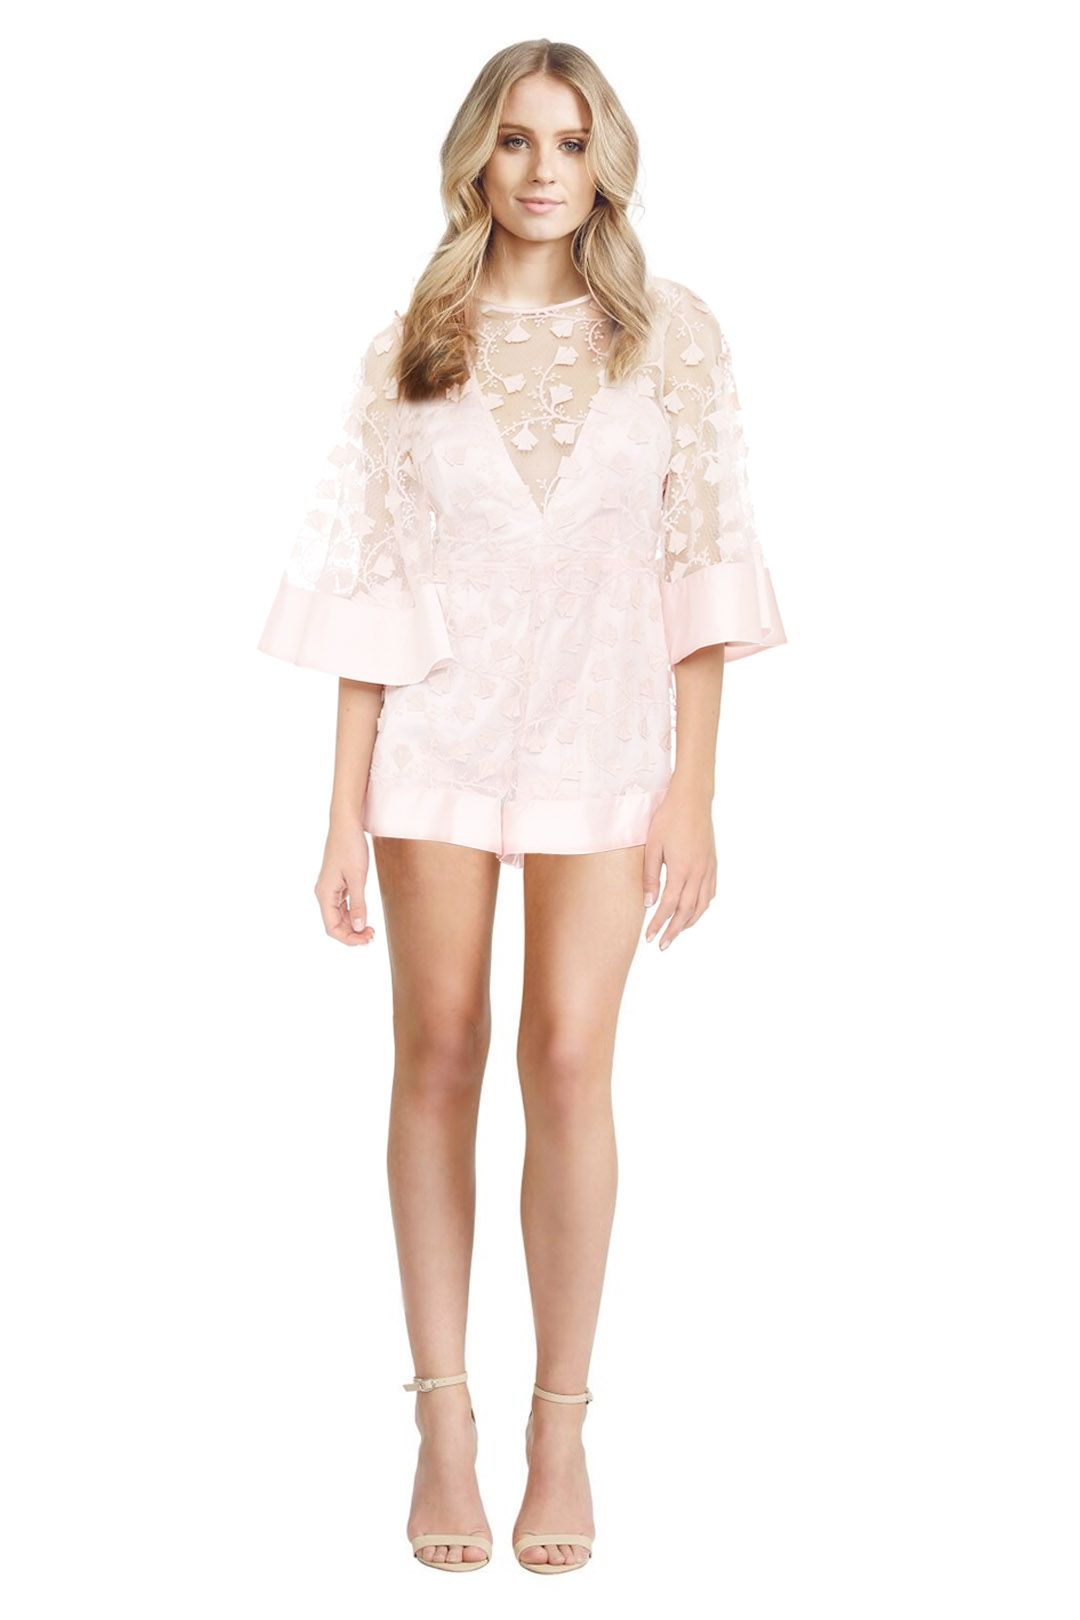 Alice McCall - Gypsy Eyes Playsuit - Blush - Front